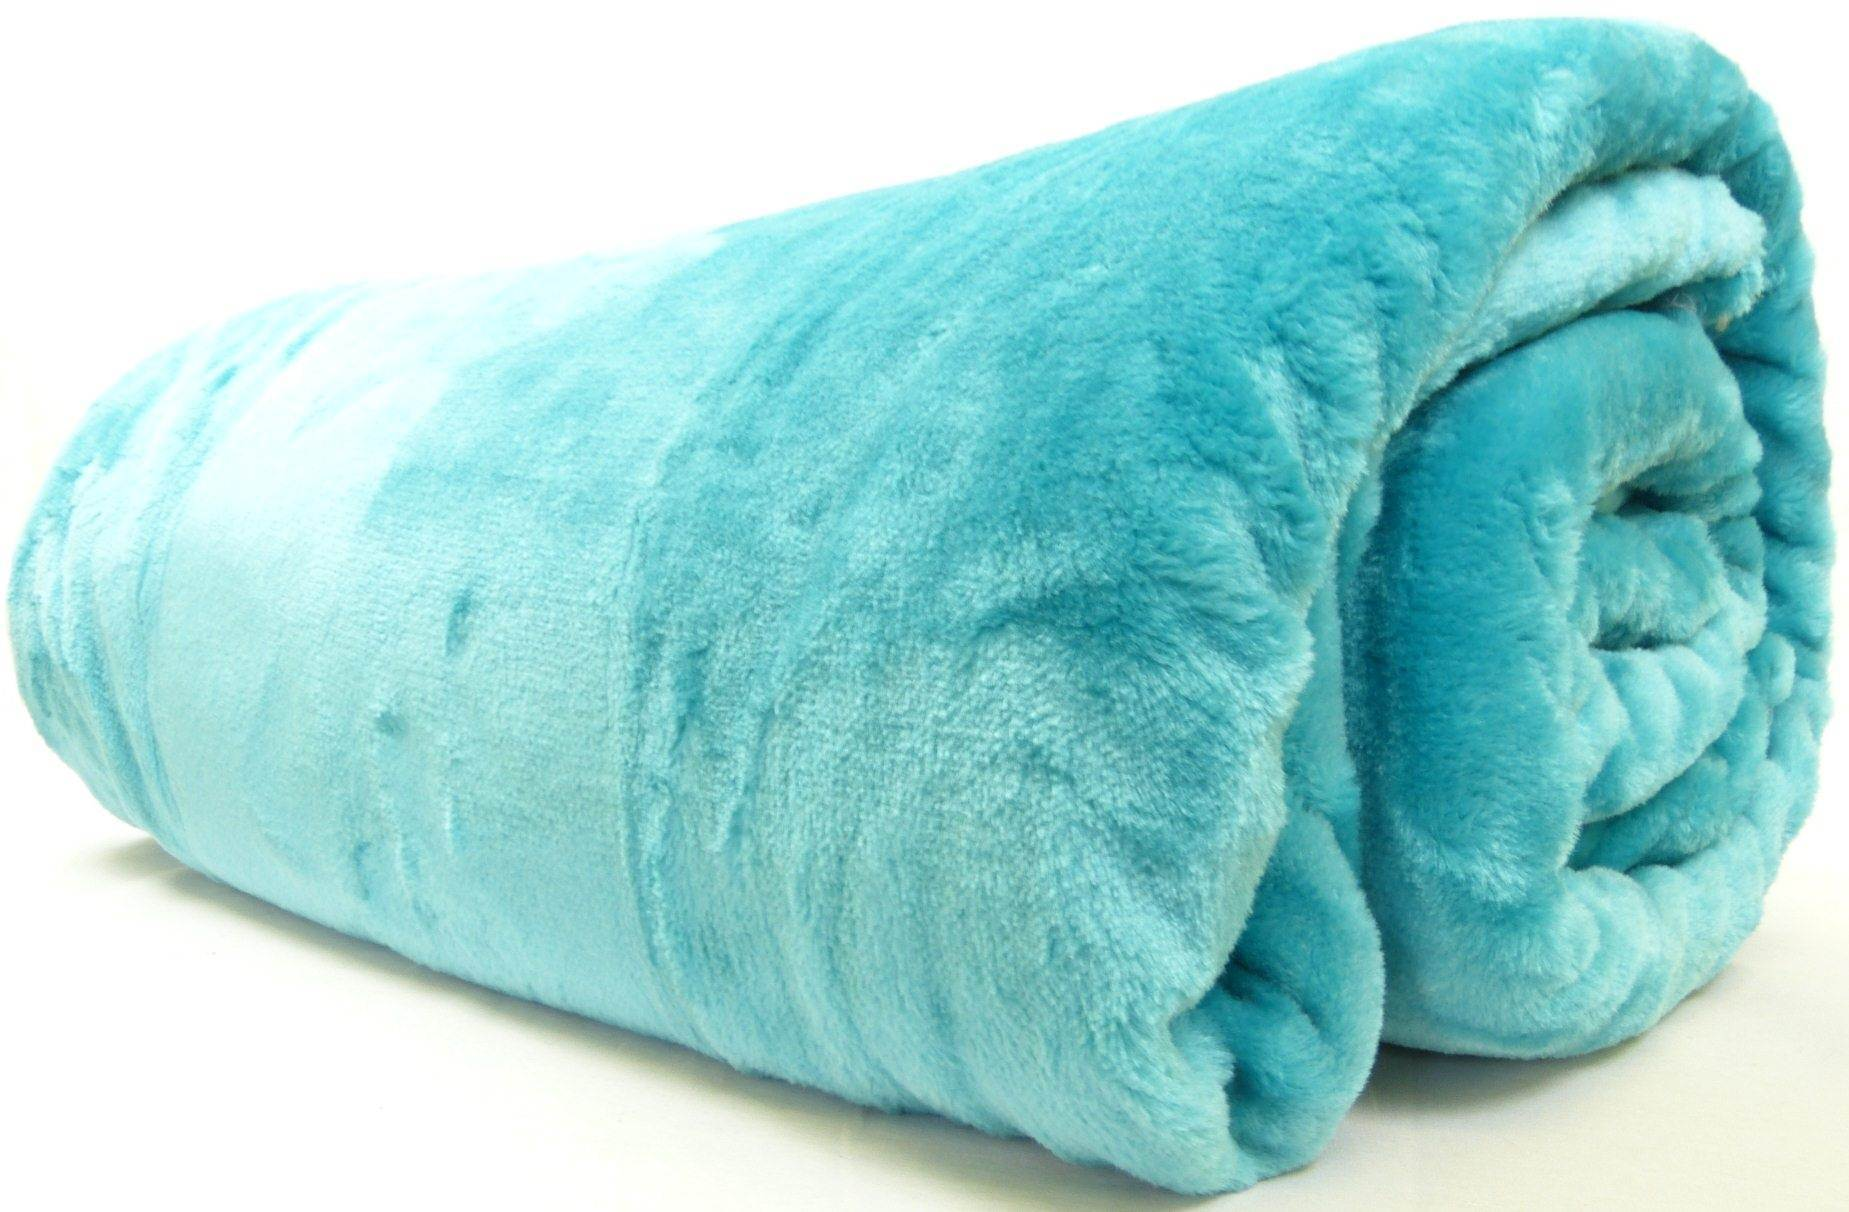 Teal Throws For Sofas 100 Cotton Green Large 3 Or 4 Seater